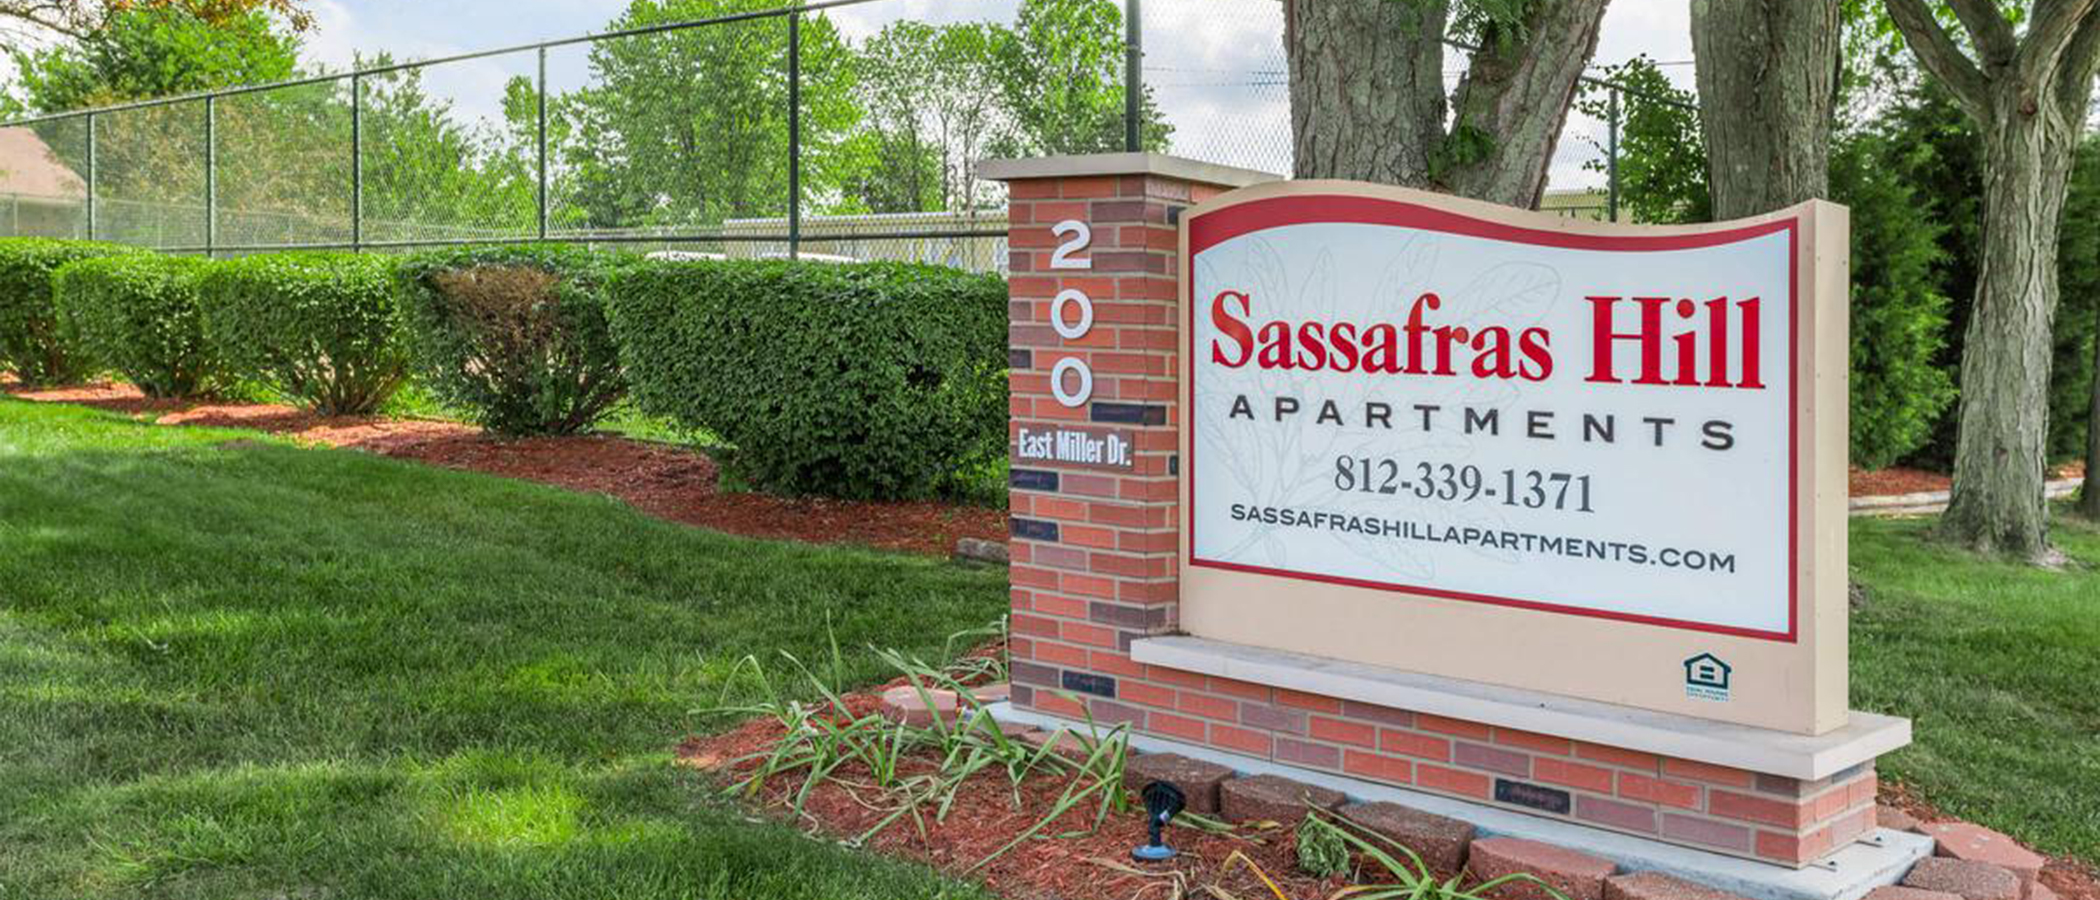 Sassafras hill apartments apartments in bloomington in - 4 bedroom apartments bloomington in ...